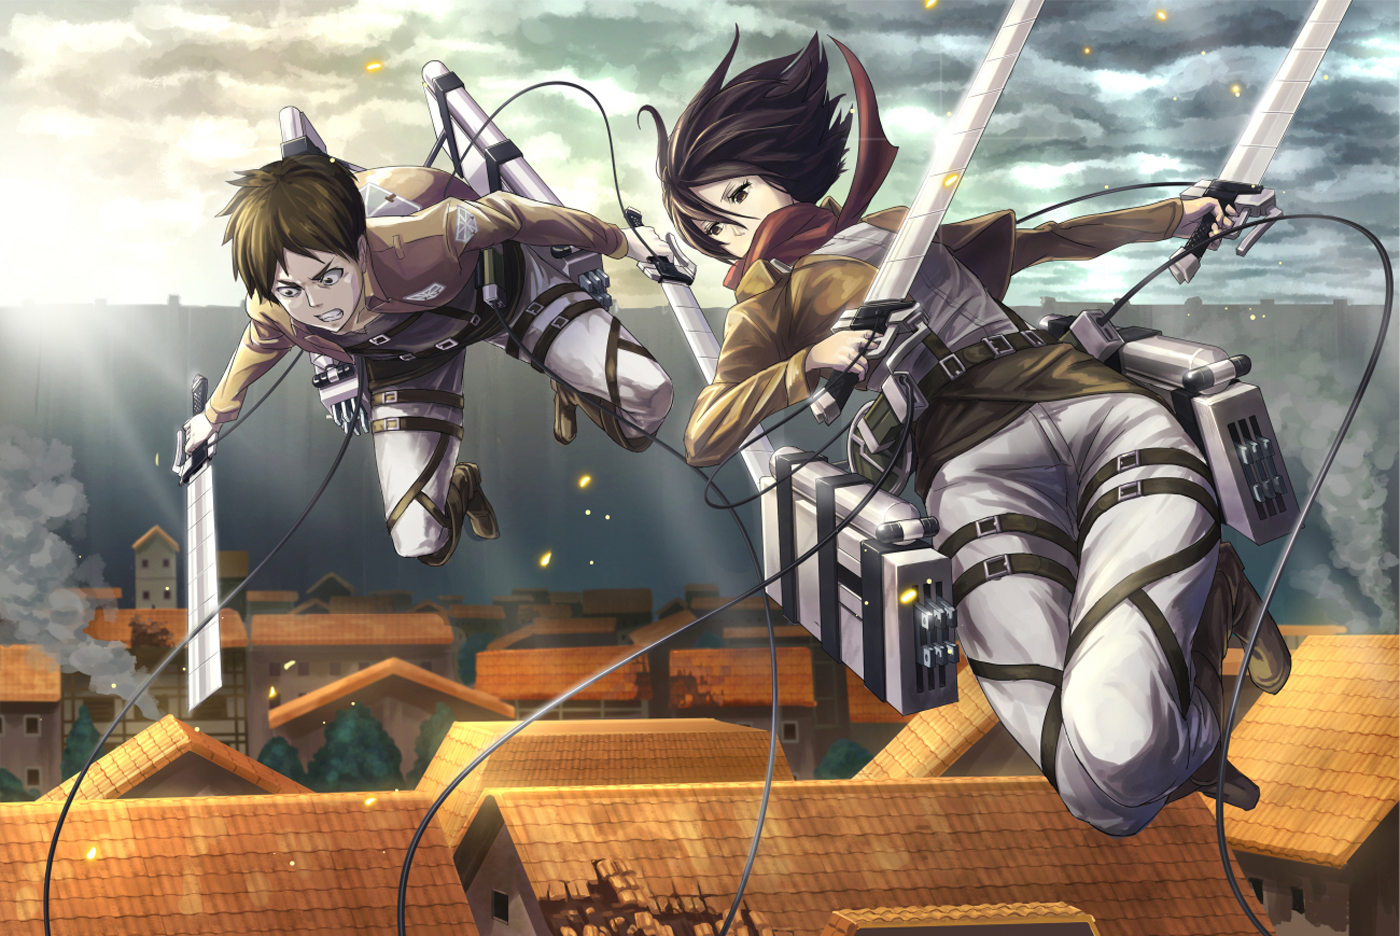 Hd Wallpaper Mikasa Eren 3d Maneuver 0809